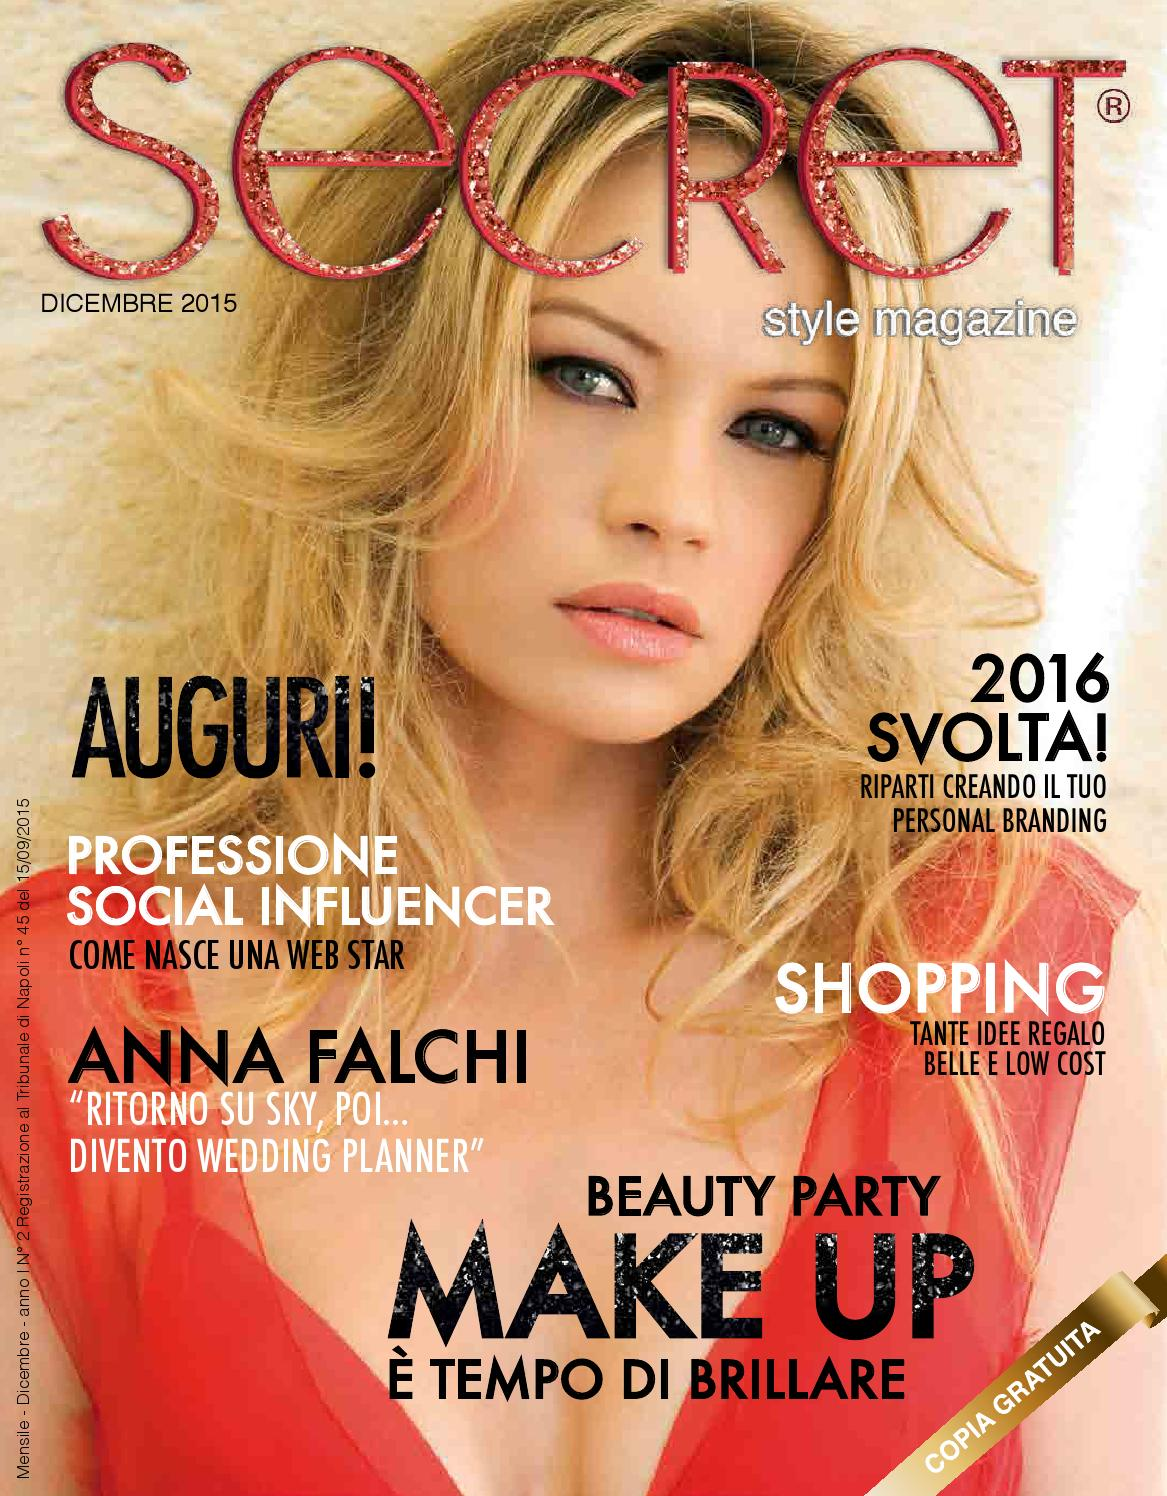 Secret Style magazine- Dicembre 2015 by Secret Style magazine - issuu 26ffa114da6